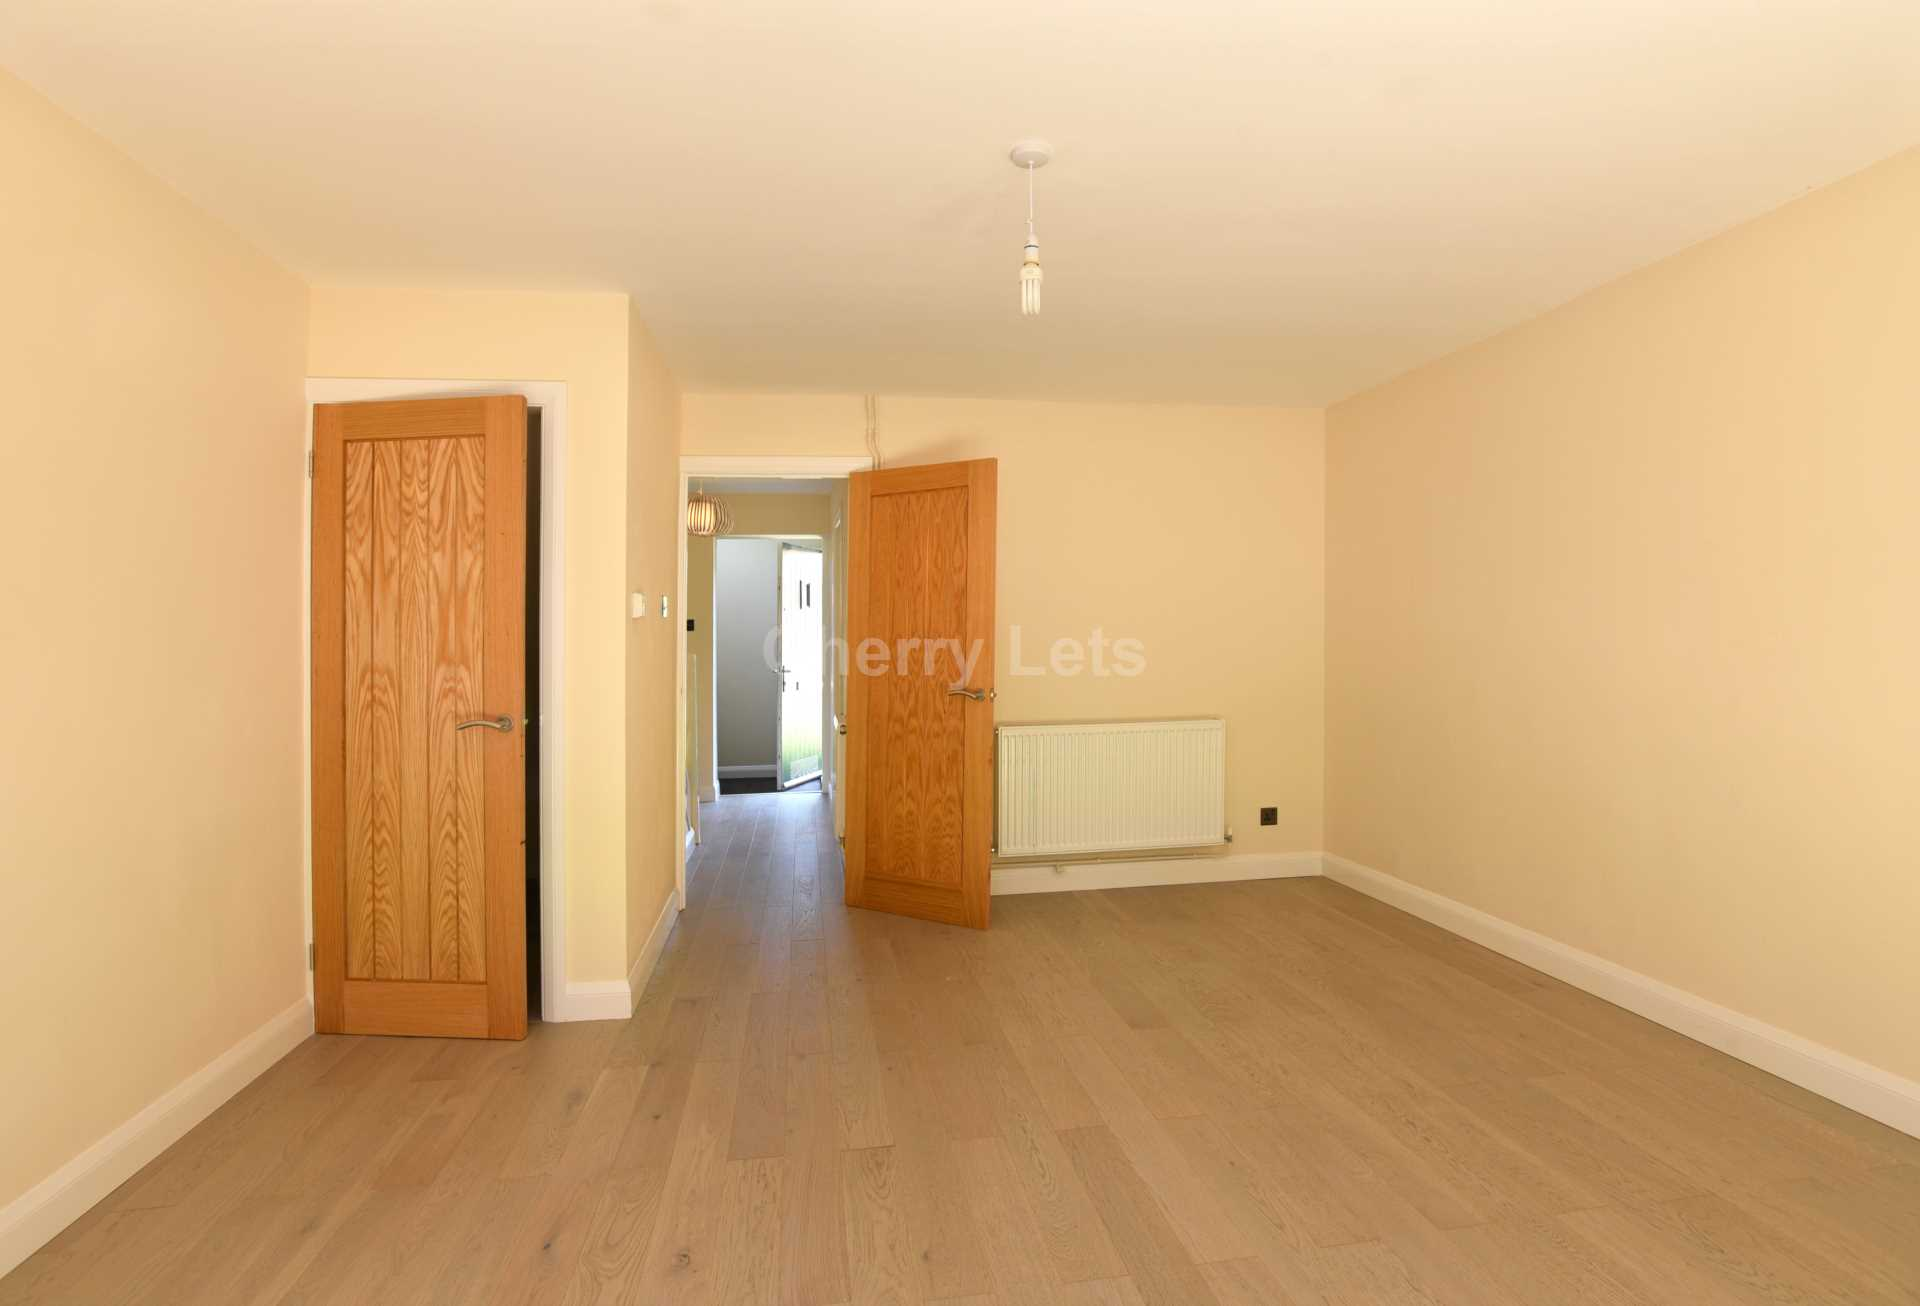 3 bed terraced house to rent in Keytes Close, Adderbury, OX17  - Property Image 3